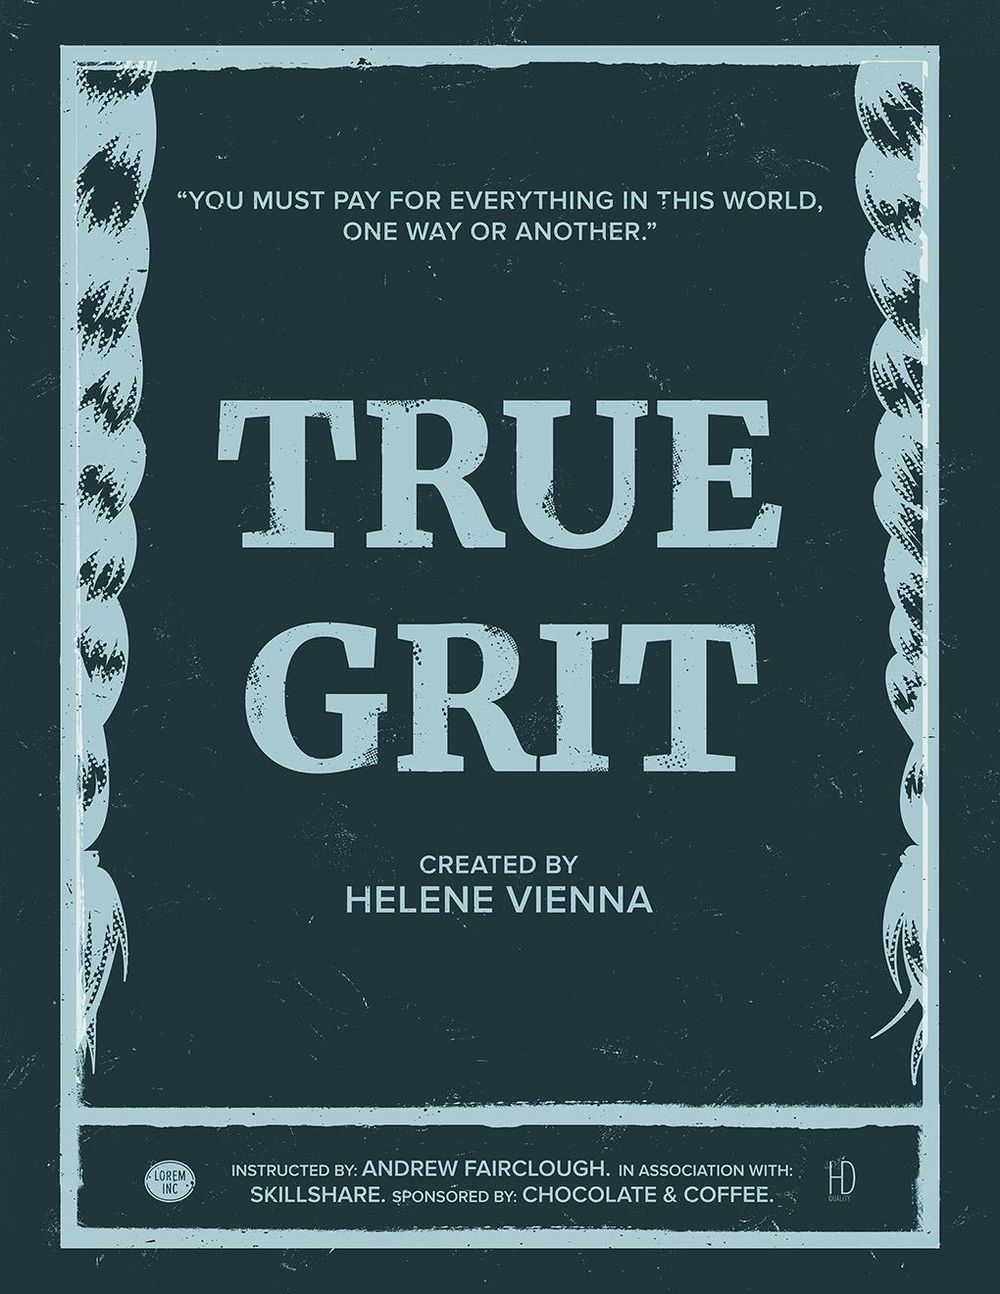 GRIT by HELENE VIENNA - image 5 - student project